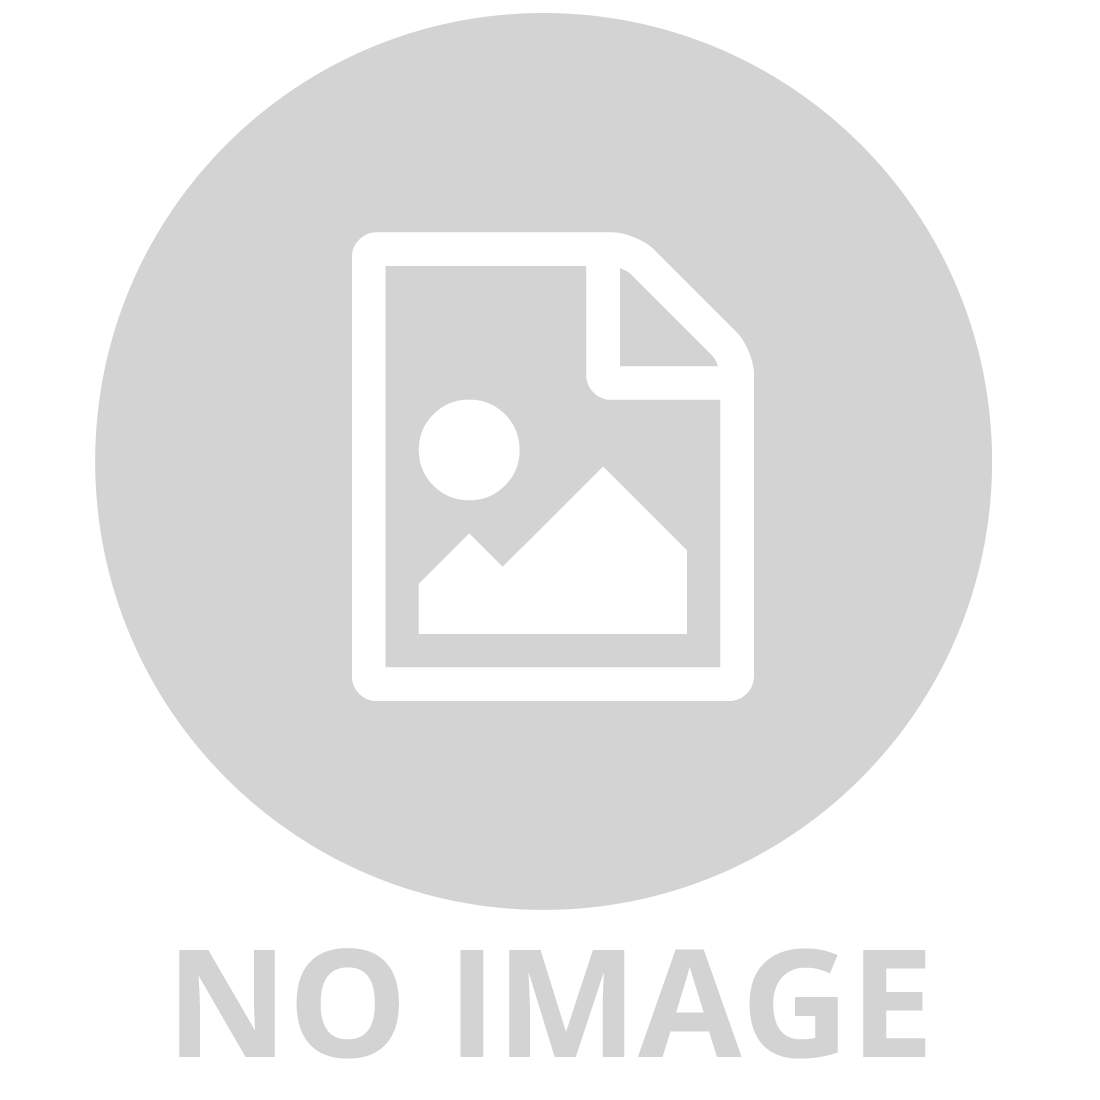 KIDS PROJECT CREATE YOUR OWN TERRARIUMS